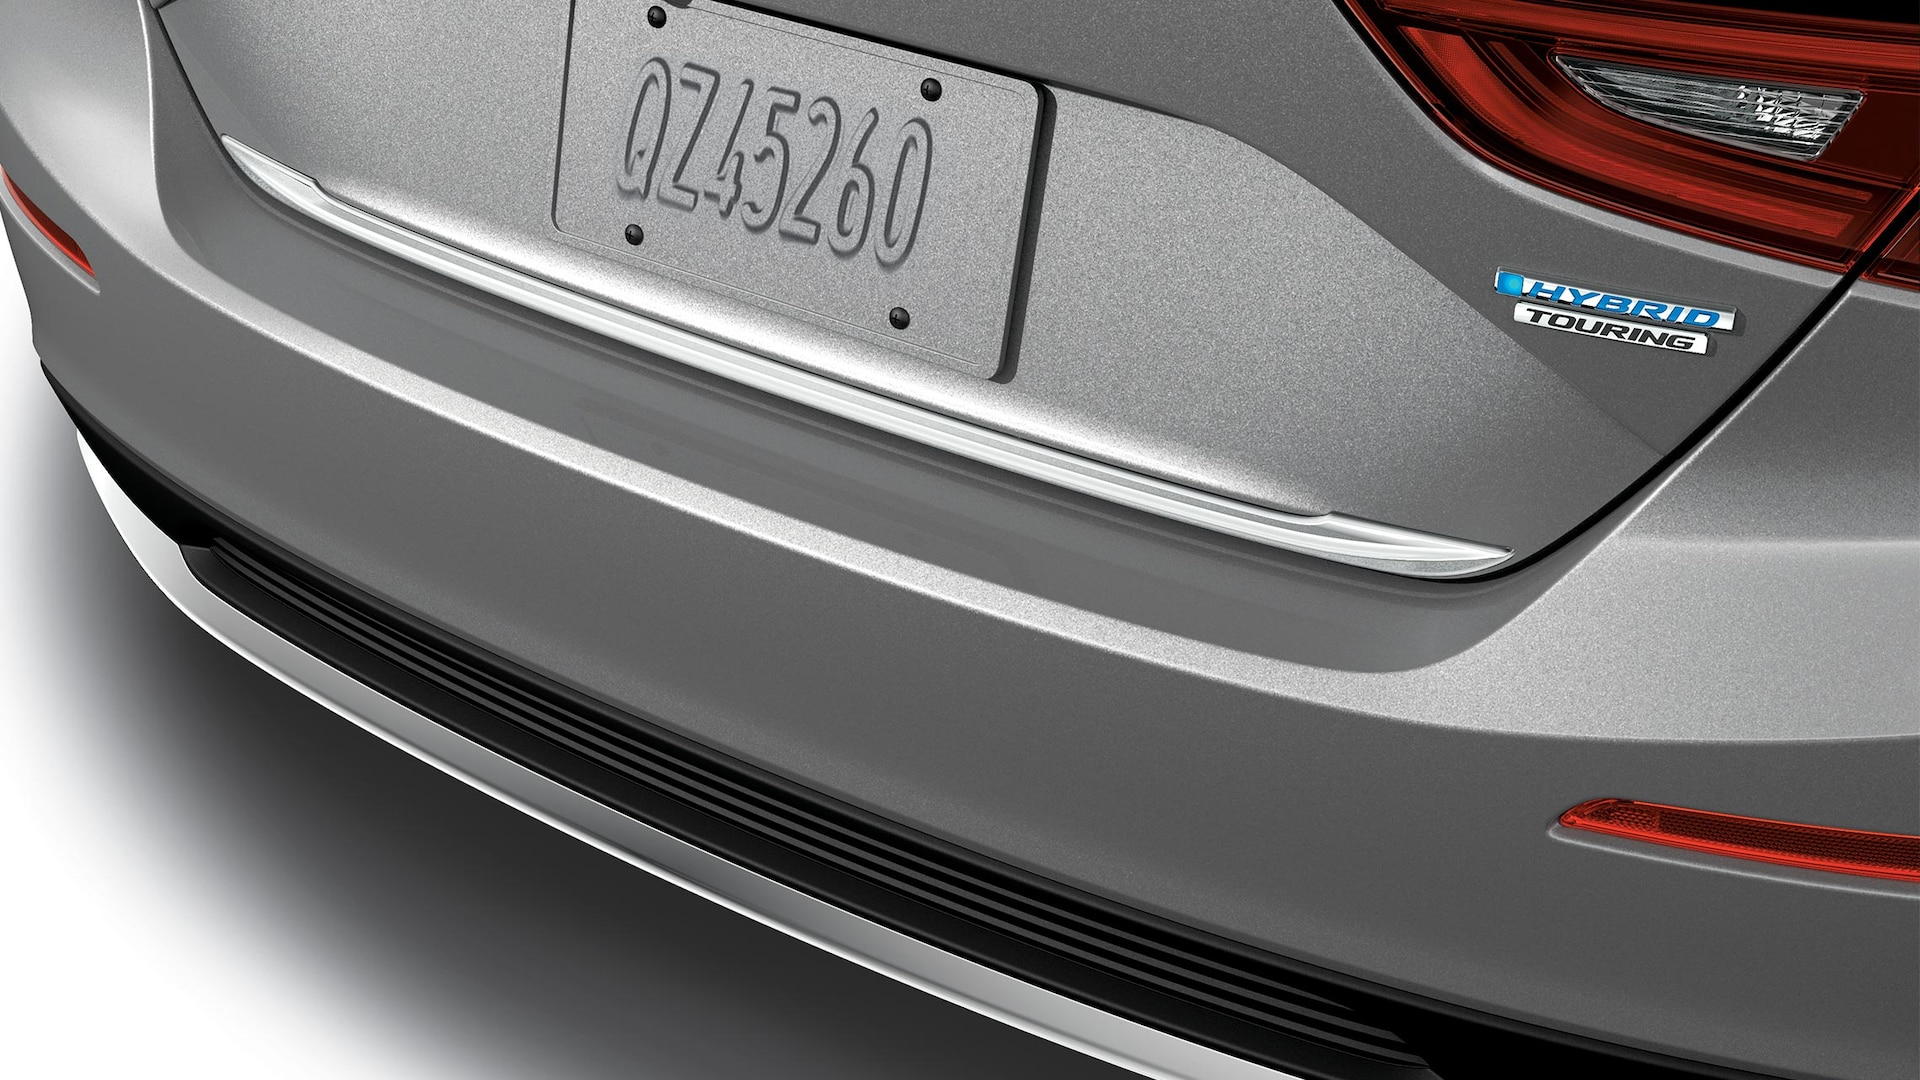 LED Fog Lights detail on the 2019 Honda Civic Sedan in Modern Steel Metallic.